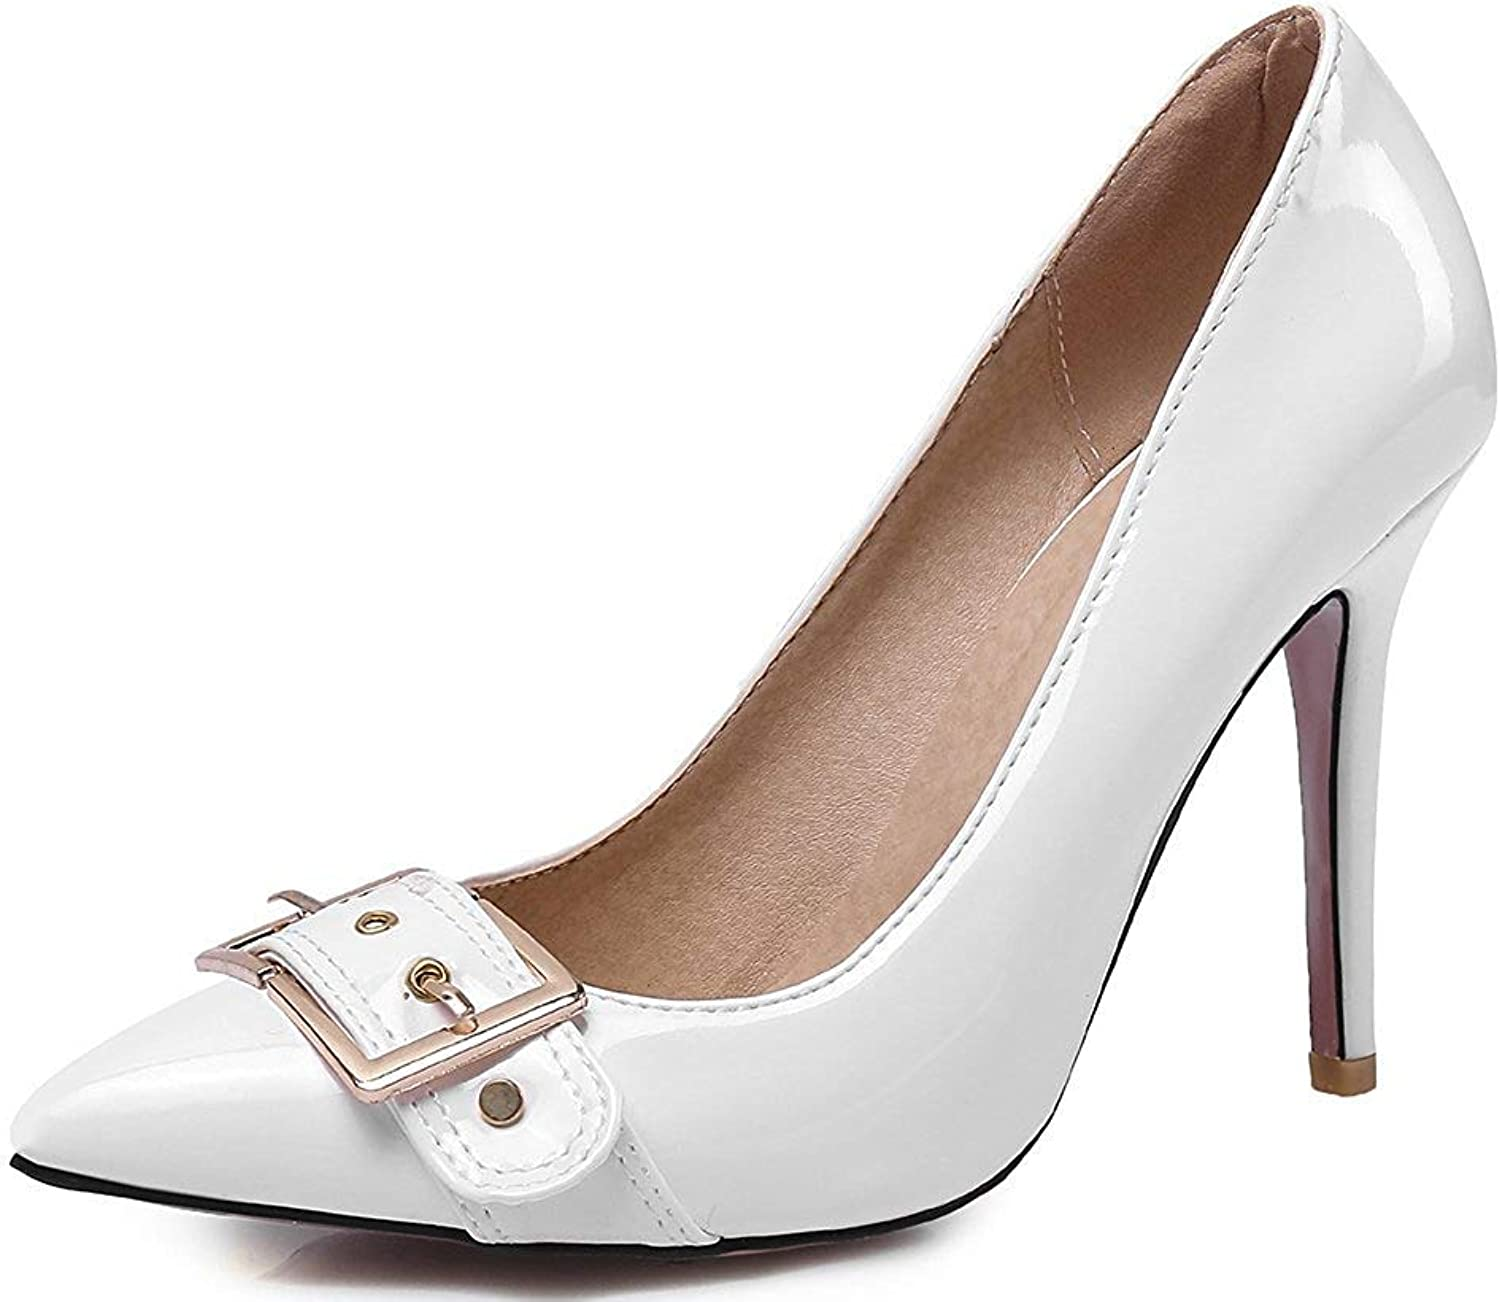 Ghapwe Women's Classic Pointy Toe Stiletto High Heel Slip On Pumps shoes White 7.5 M US